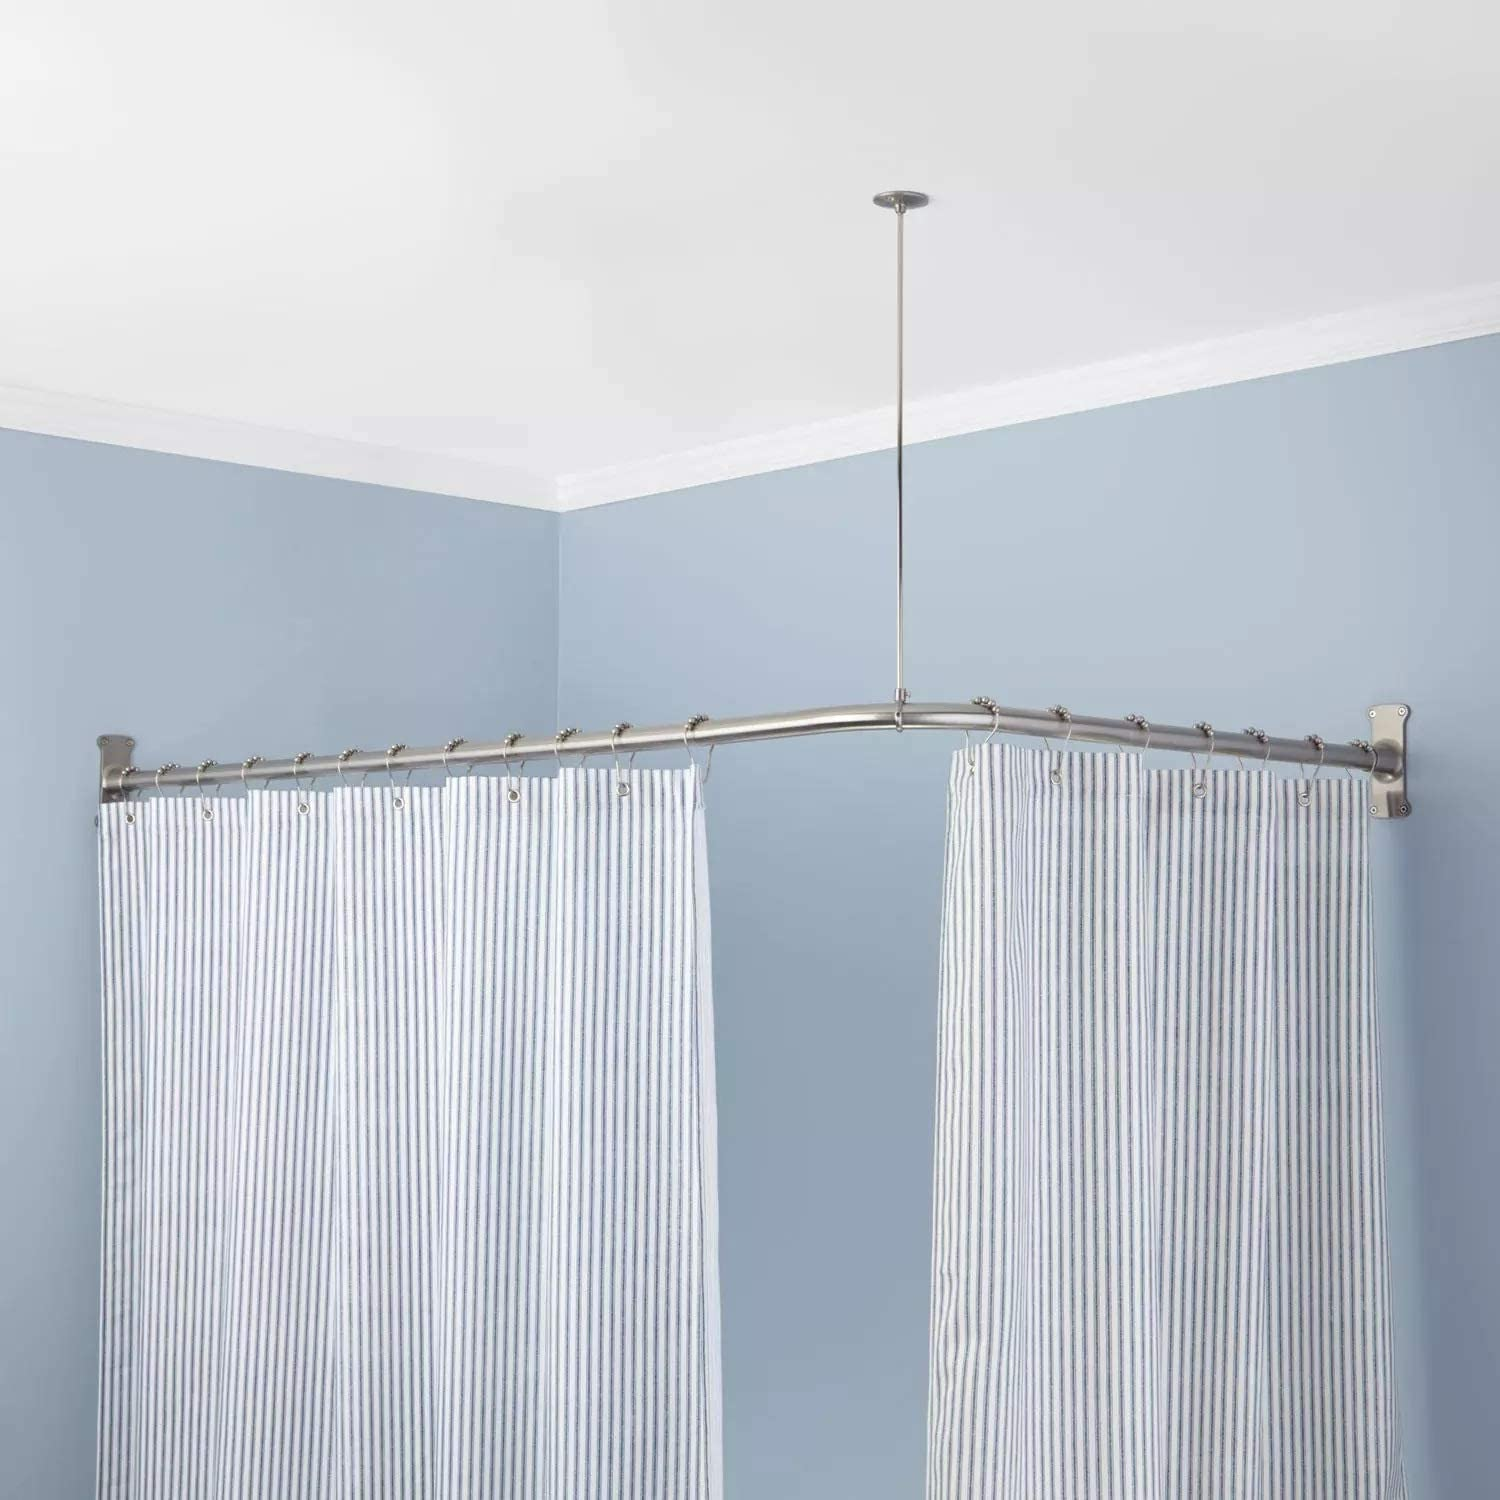 Naiture Stainless Steel 60 X 30 Corner Shower Curtain Rod With Ceiling Support Chrome Amazon Ca Home Kitchen